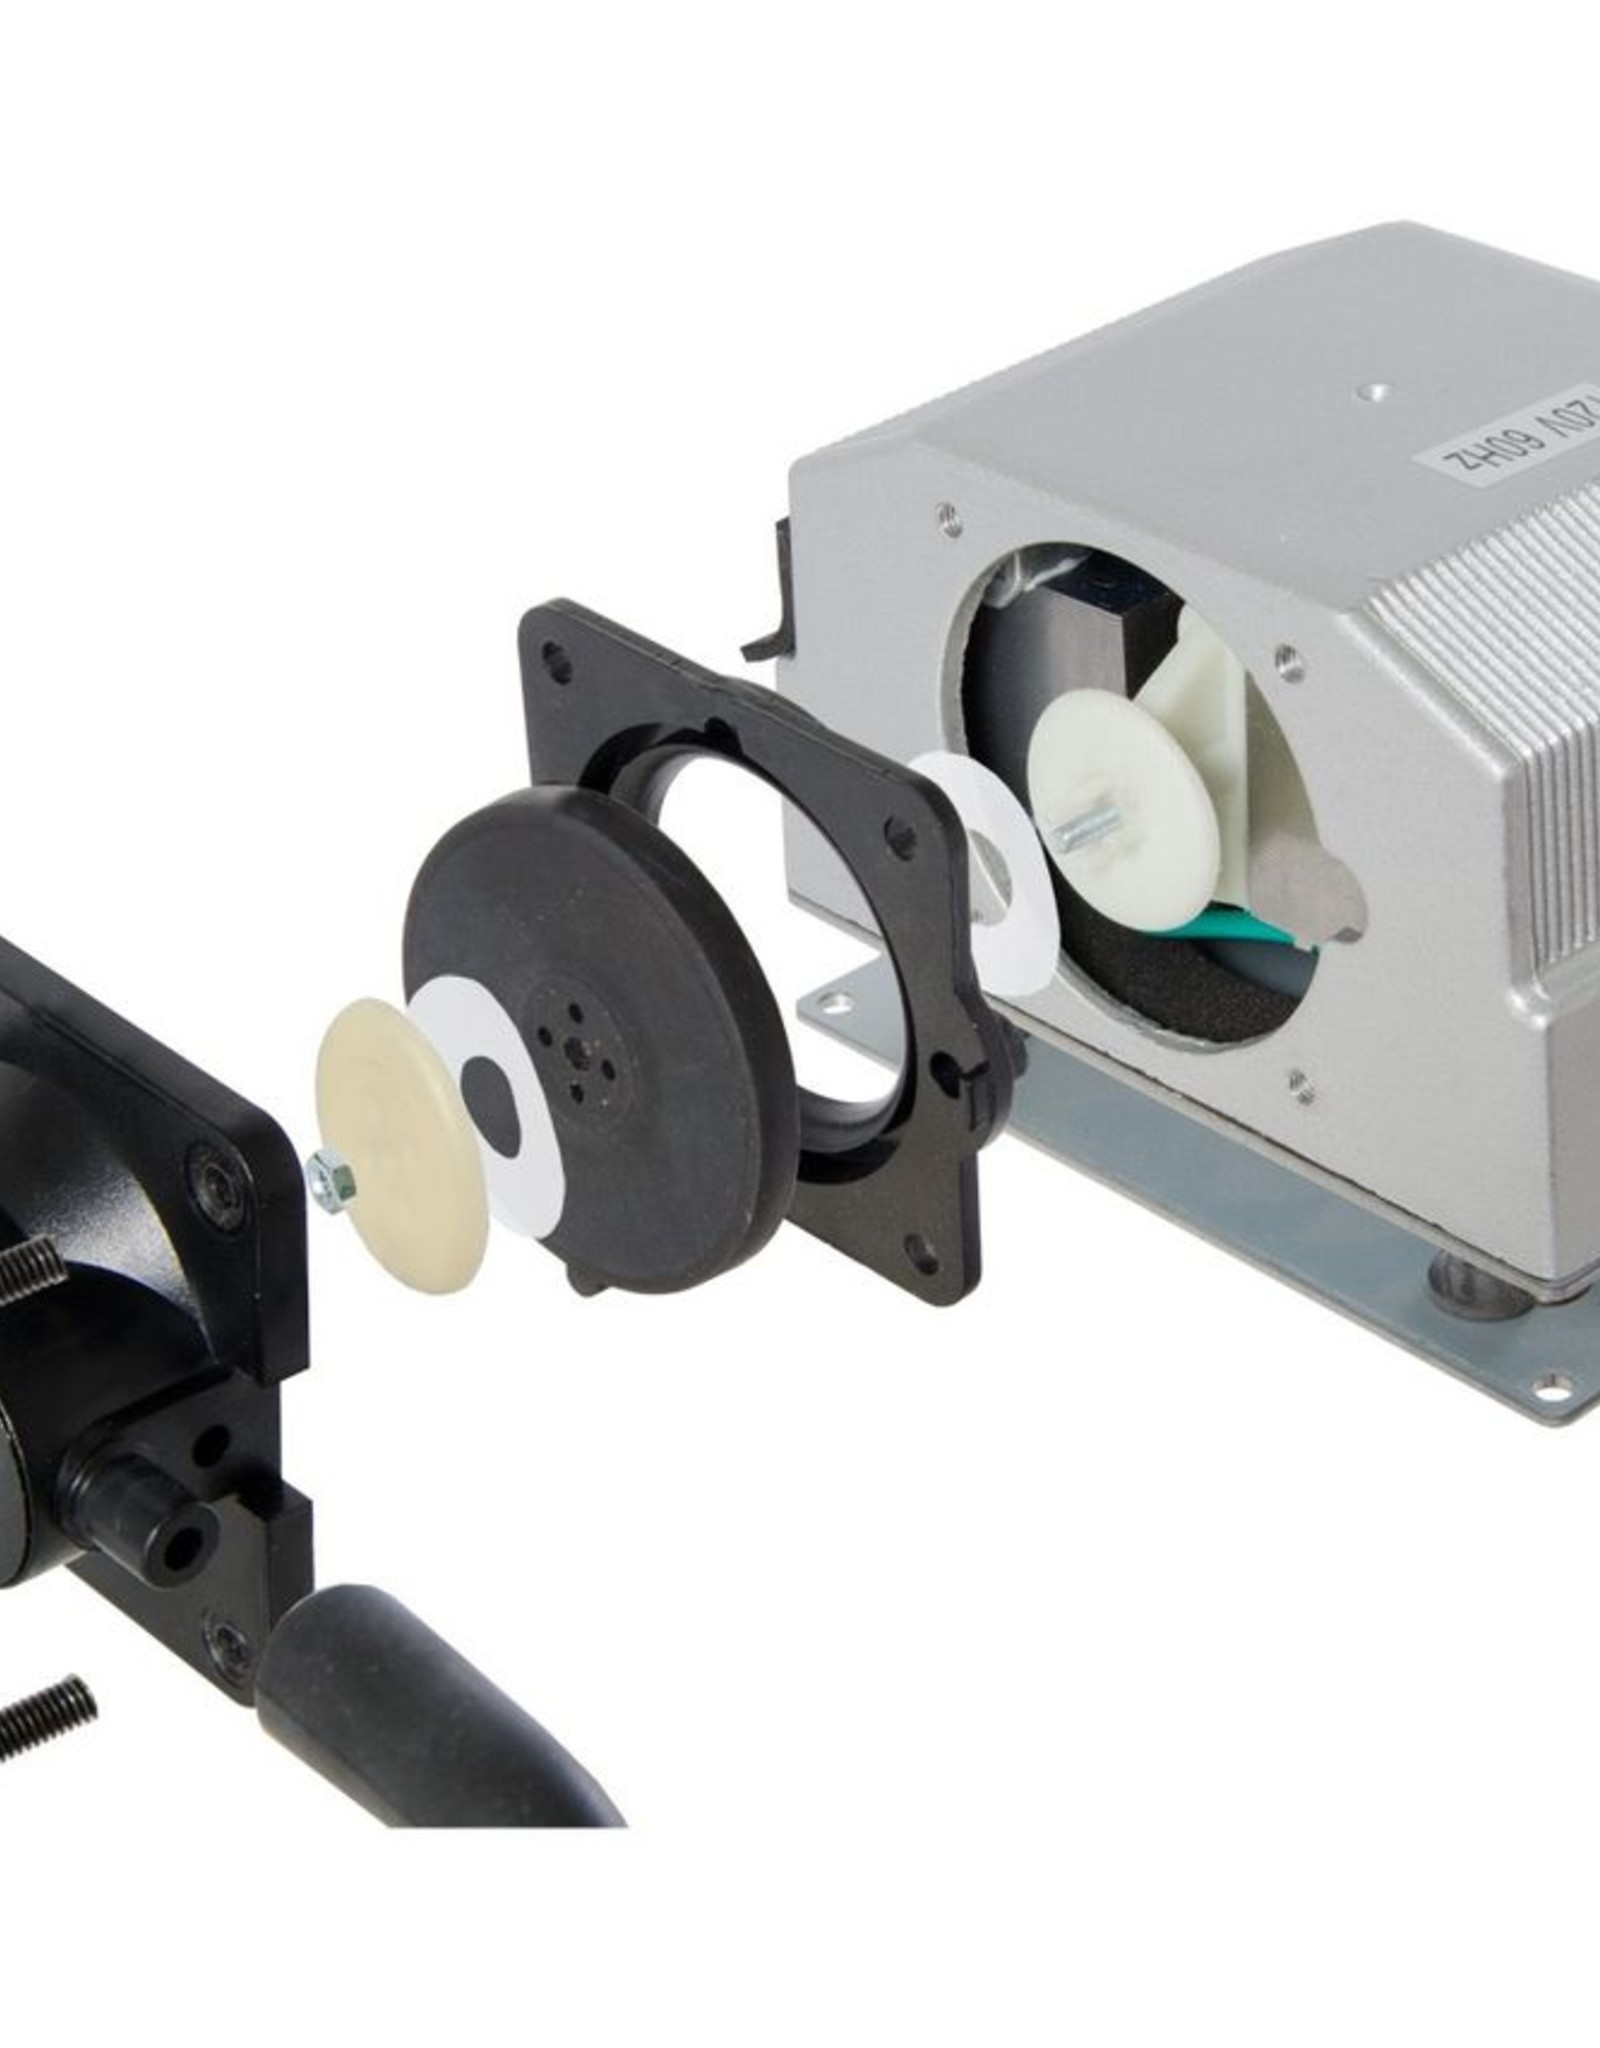 """ACTIVE AQUA The Active Aqua Dual Diaphragm Air Pump is ideal for all hydroponic applications where quiet, consistent, and powerful airflow output is required. Its multi-outlet divider accepts 0.25"""" tubing and provides up to four separate channels of high volume air o"""